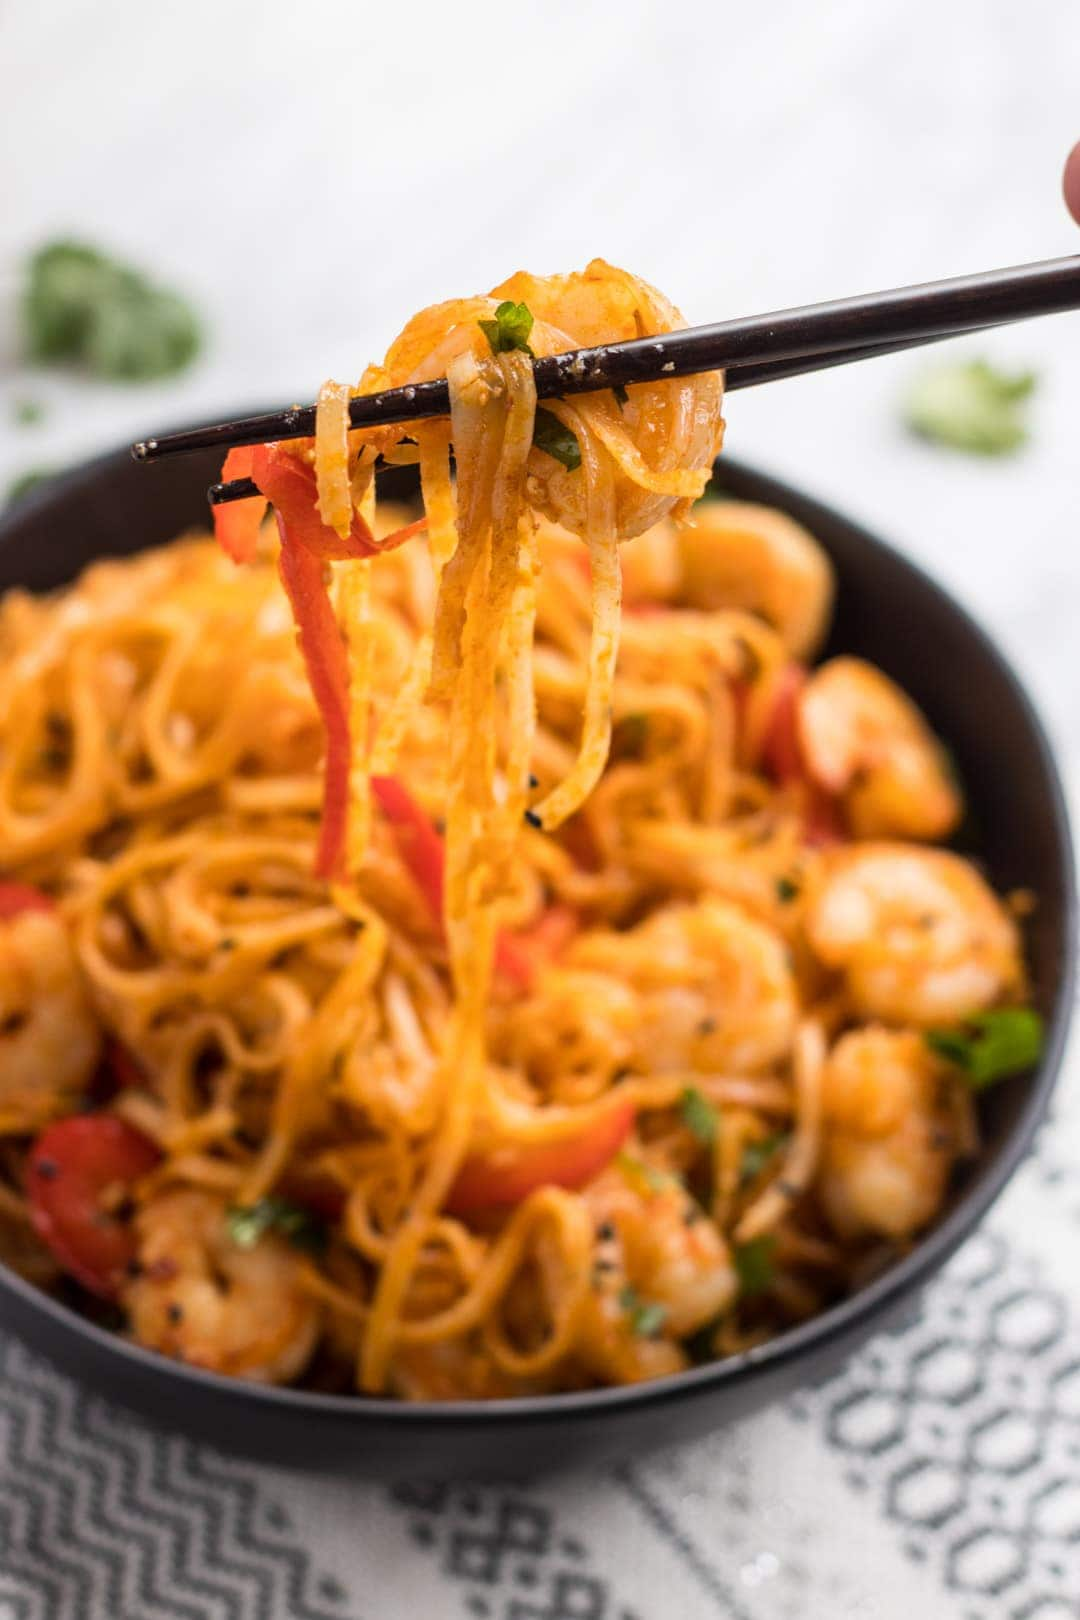 Chopsticks holding Low FODMAP Pad Thai with Shrimp